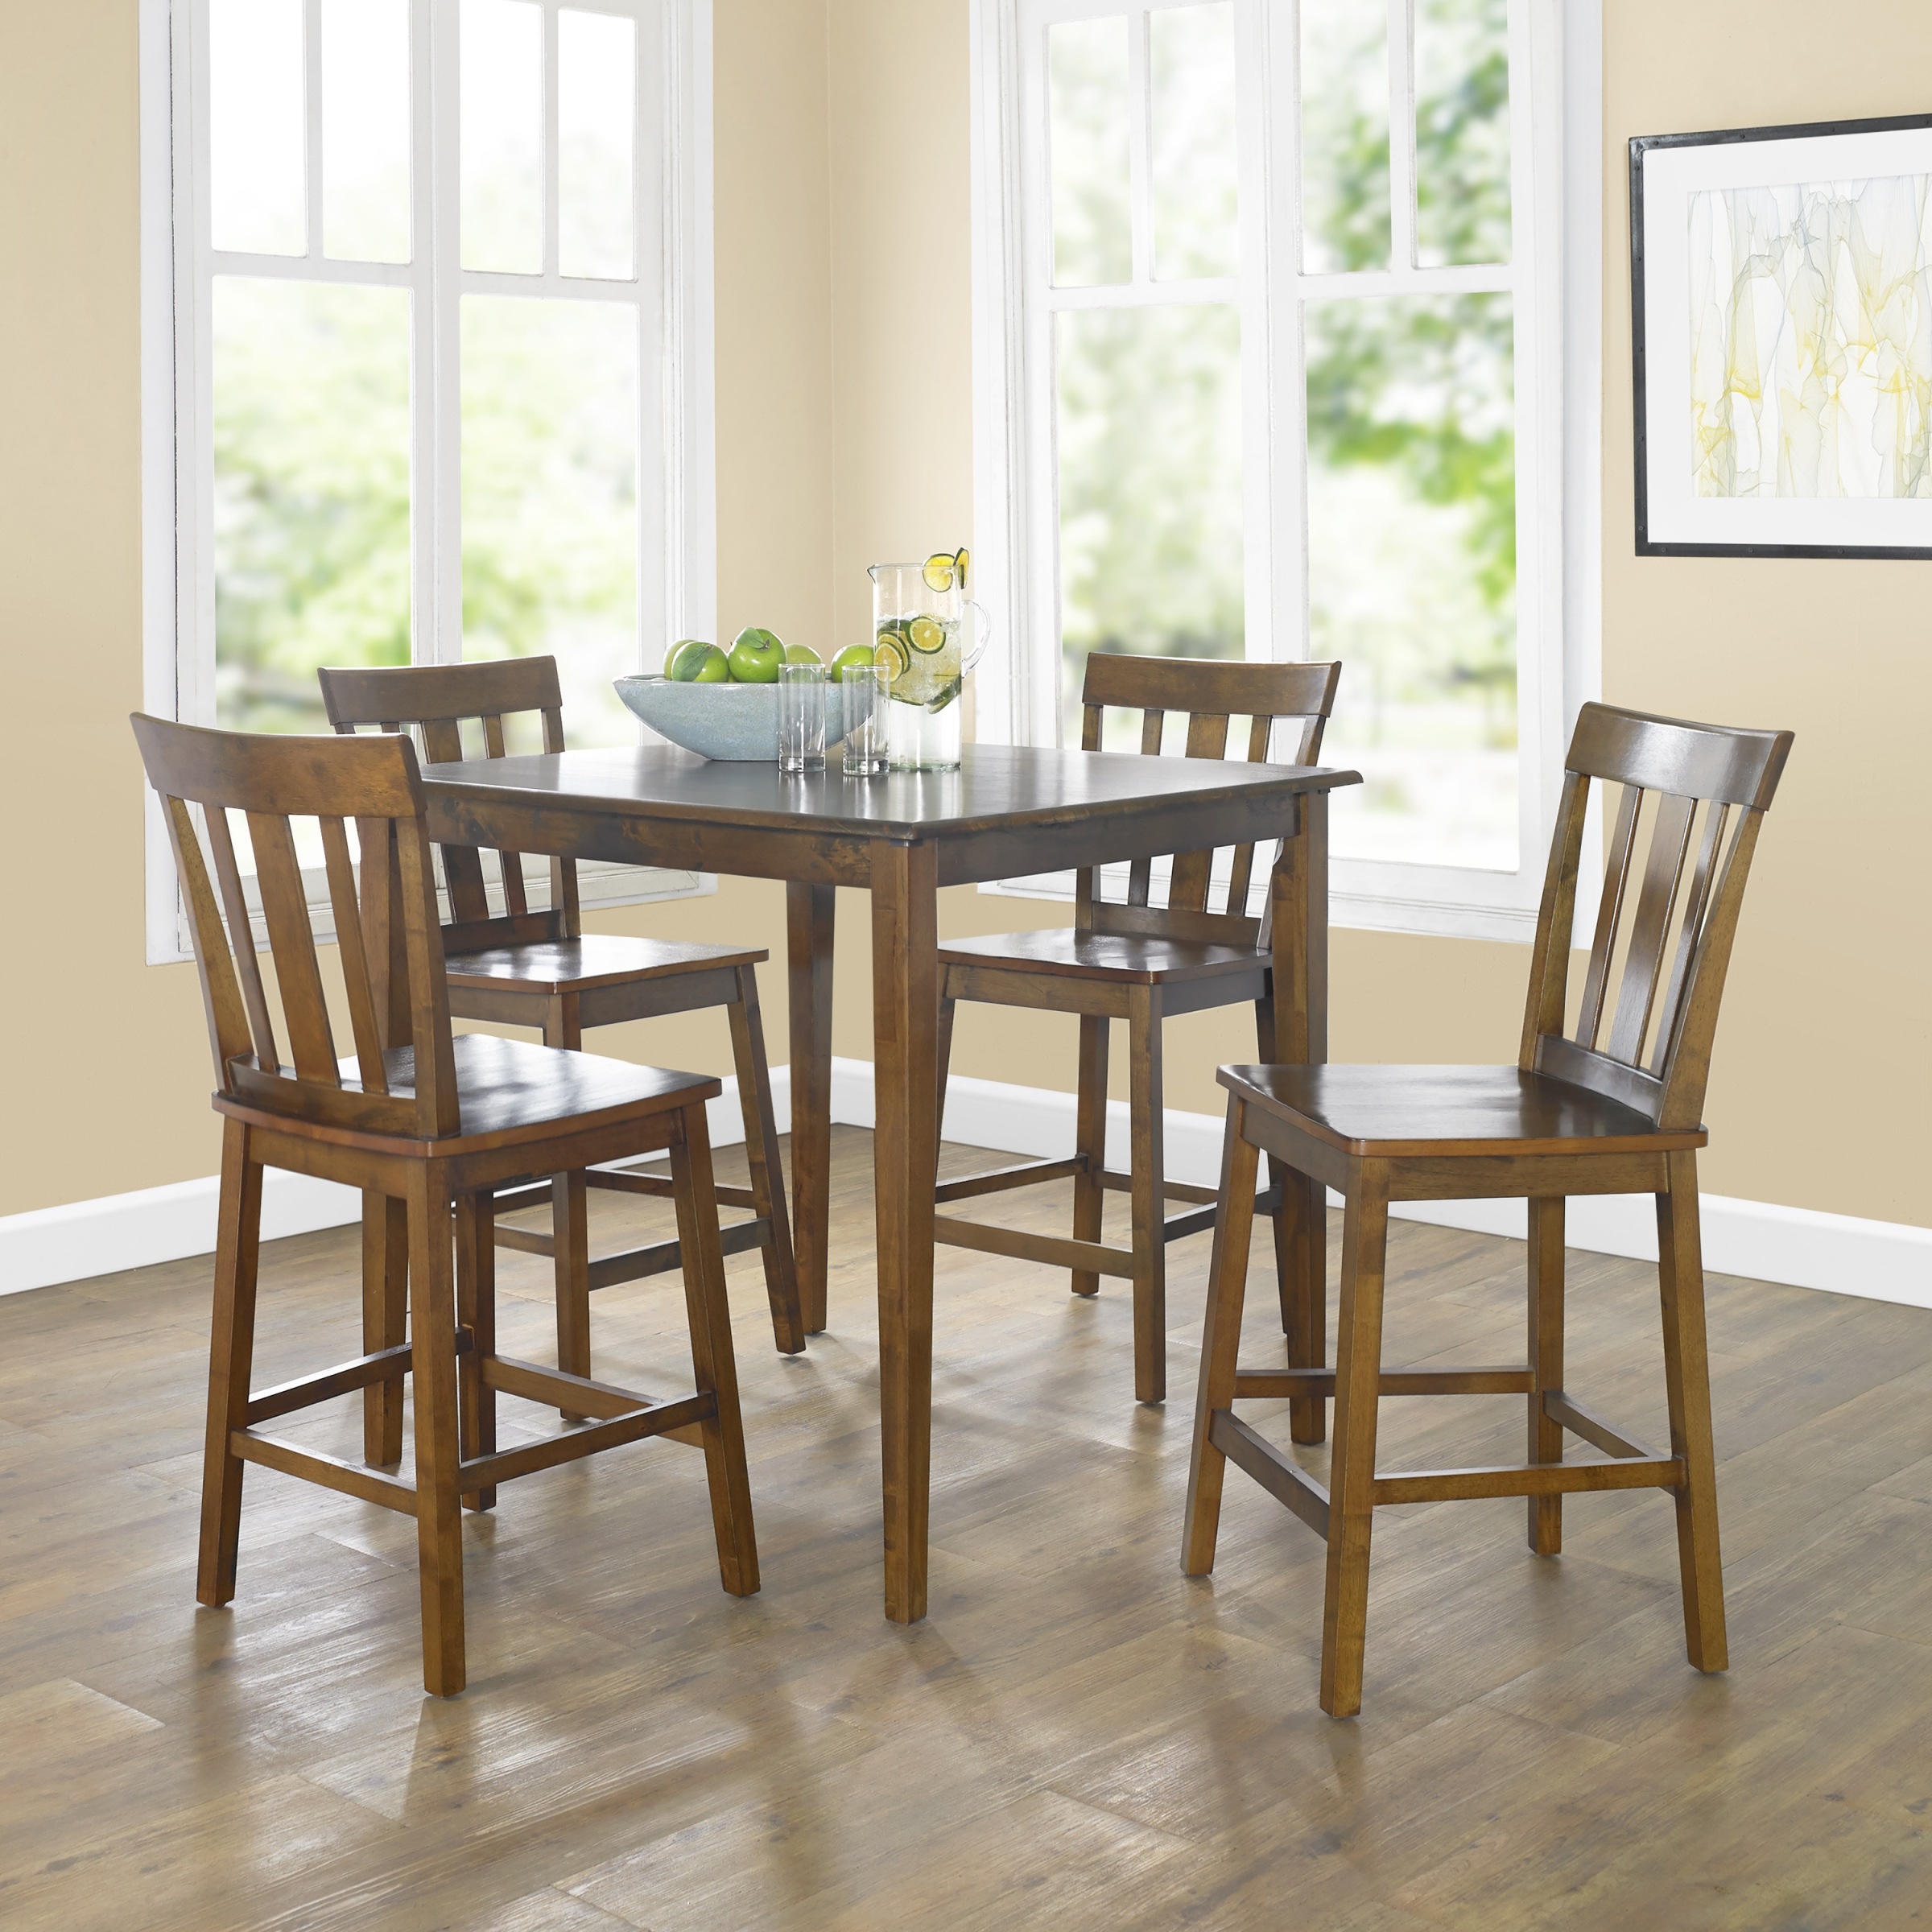 Mainstays 5 Piece Mission Counter Height Dining Set Within Well Known Bistro Transitional 4 Seating Square Dining Tables (Gallery 22 of 30)